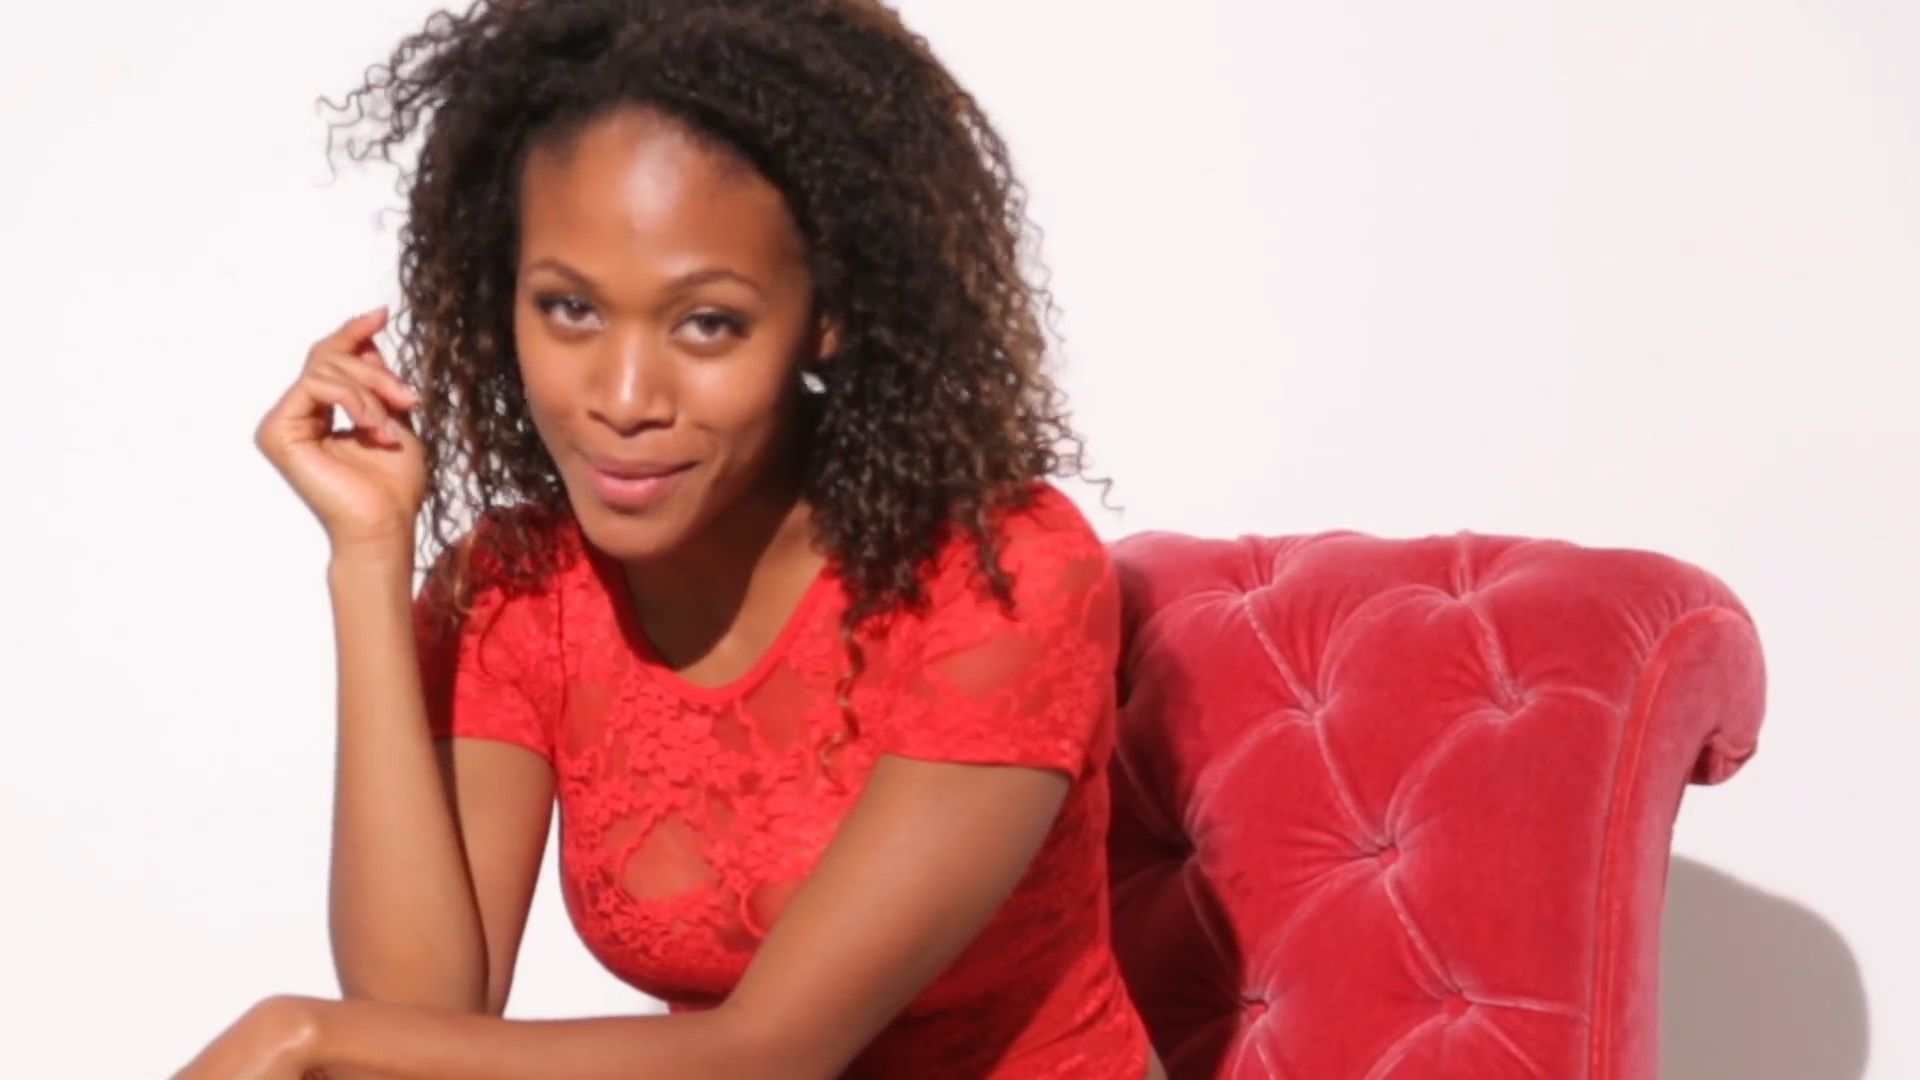 nicole beharie leftnicole beharie instagram, nicole beharie gif, nicole beharie youtube, nicole beharie left, nicole beharie movies, nicole beharie tumblr, nicole beharie leaves sleepy hollow, nicole beharie photo, nicole beharie sleepy hollow, nicole beharie wiki, nicole beharie, nicole beharie boyfriend, nicole beharie and tom mison, nicole beharie twitter, nicole beharie esquire, nicole beharie wikipedia